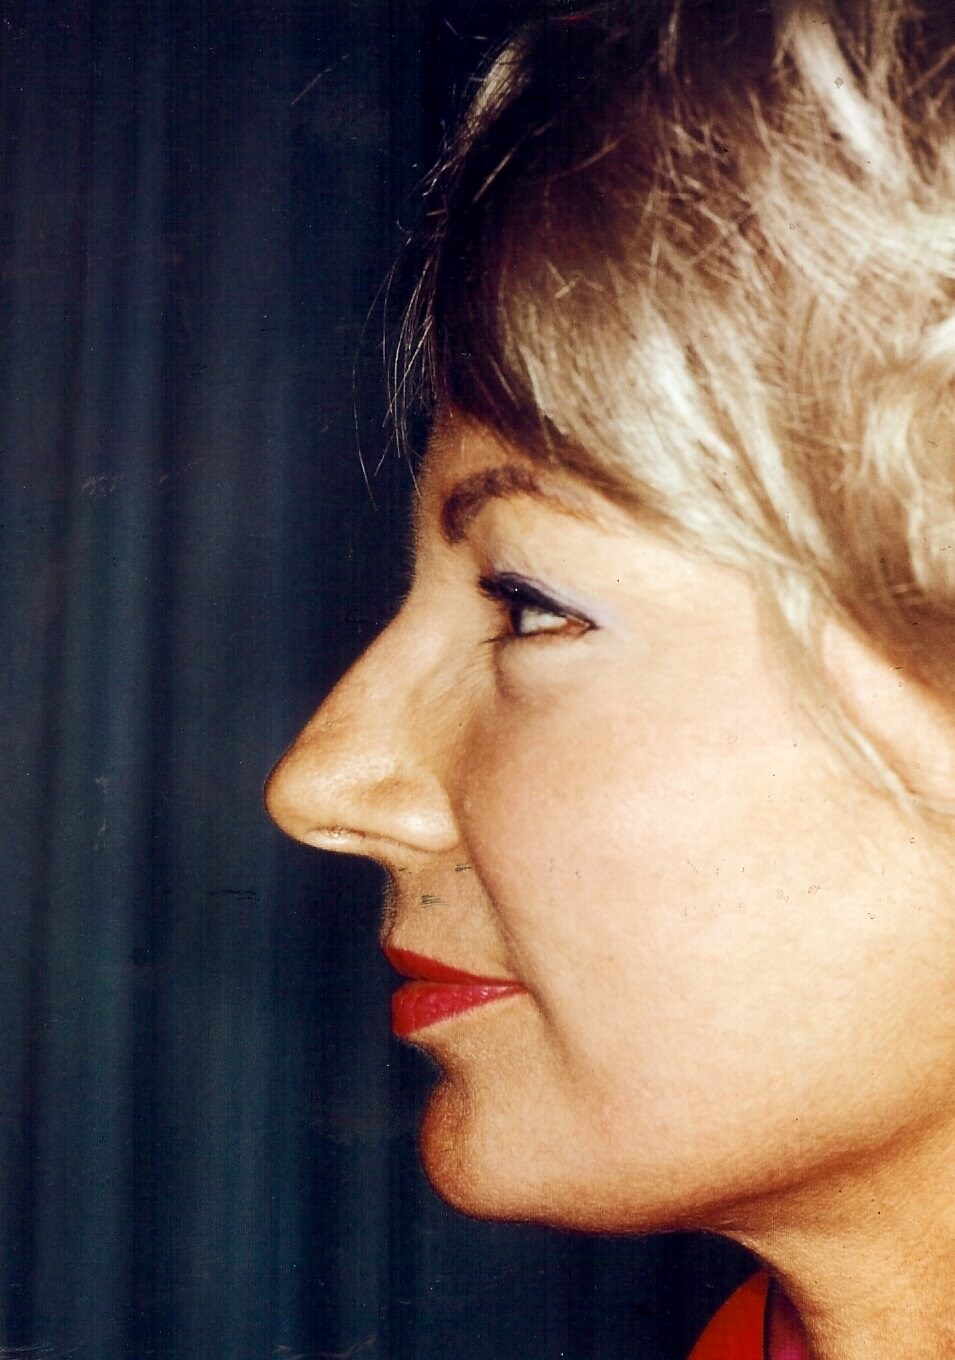 Dr. Bunkis Facial Rejuvenation Side View After